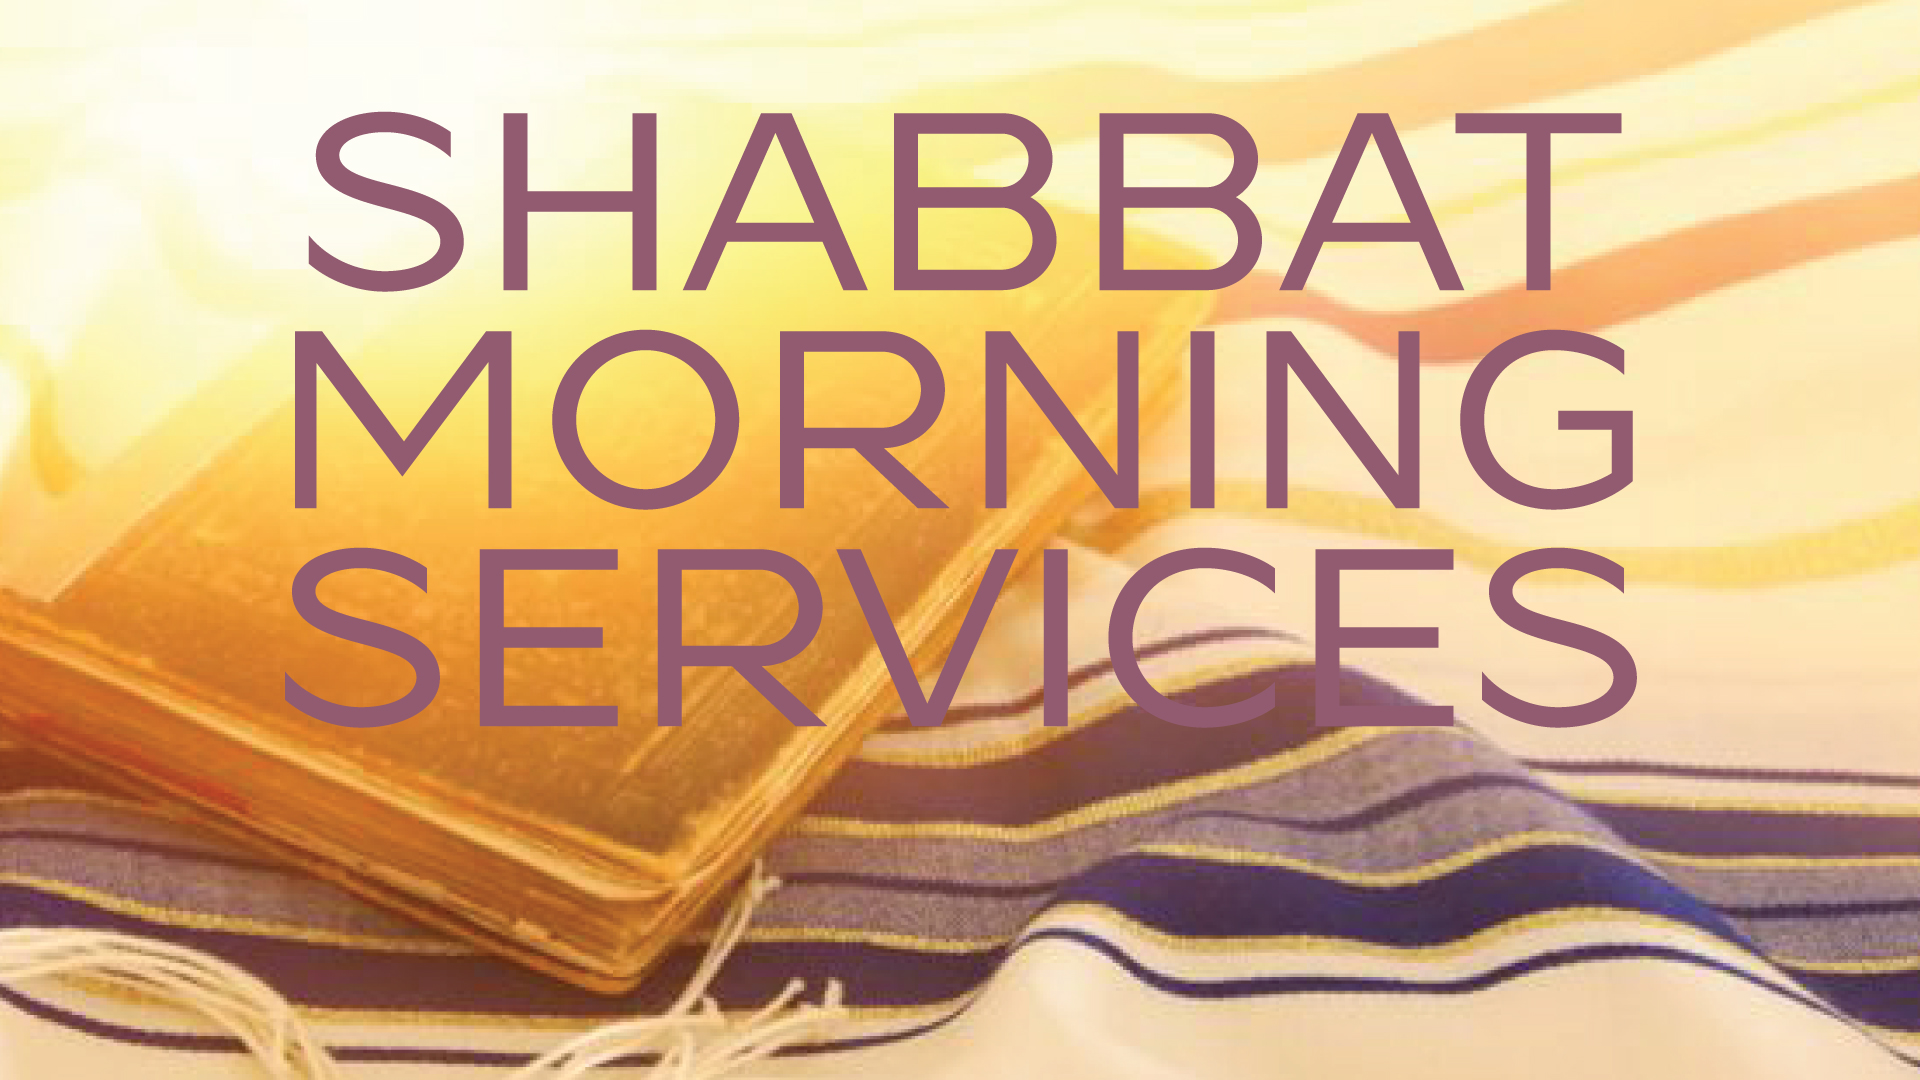 Shabbat Morning Services